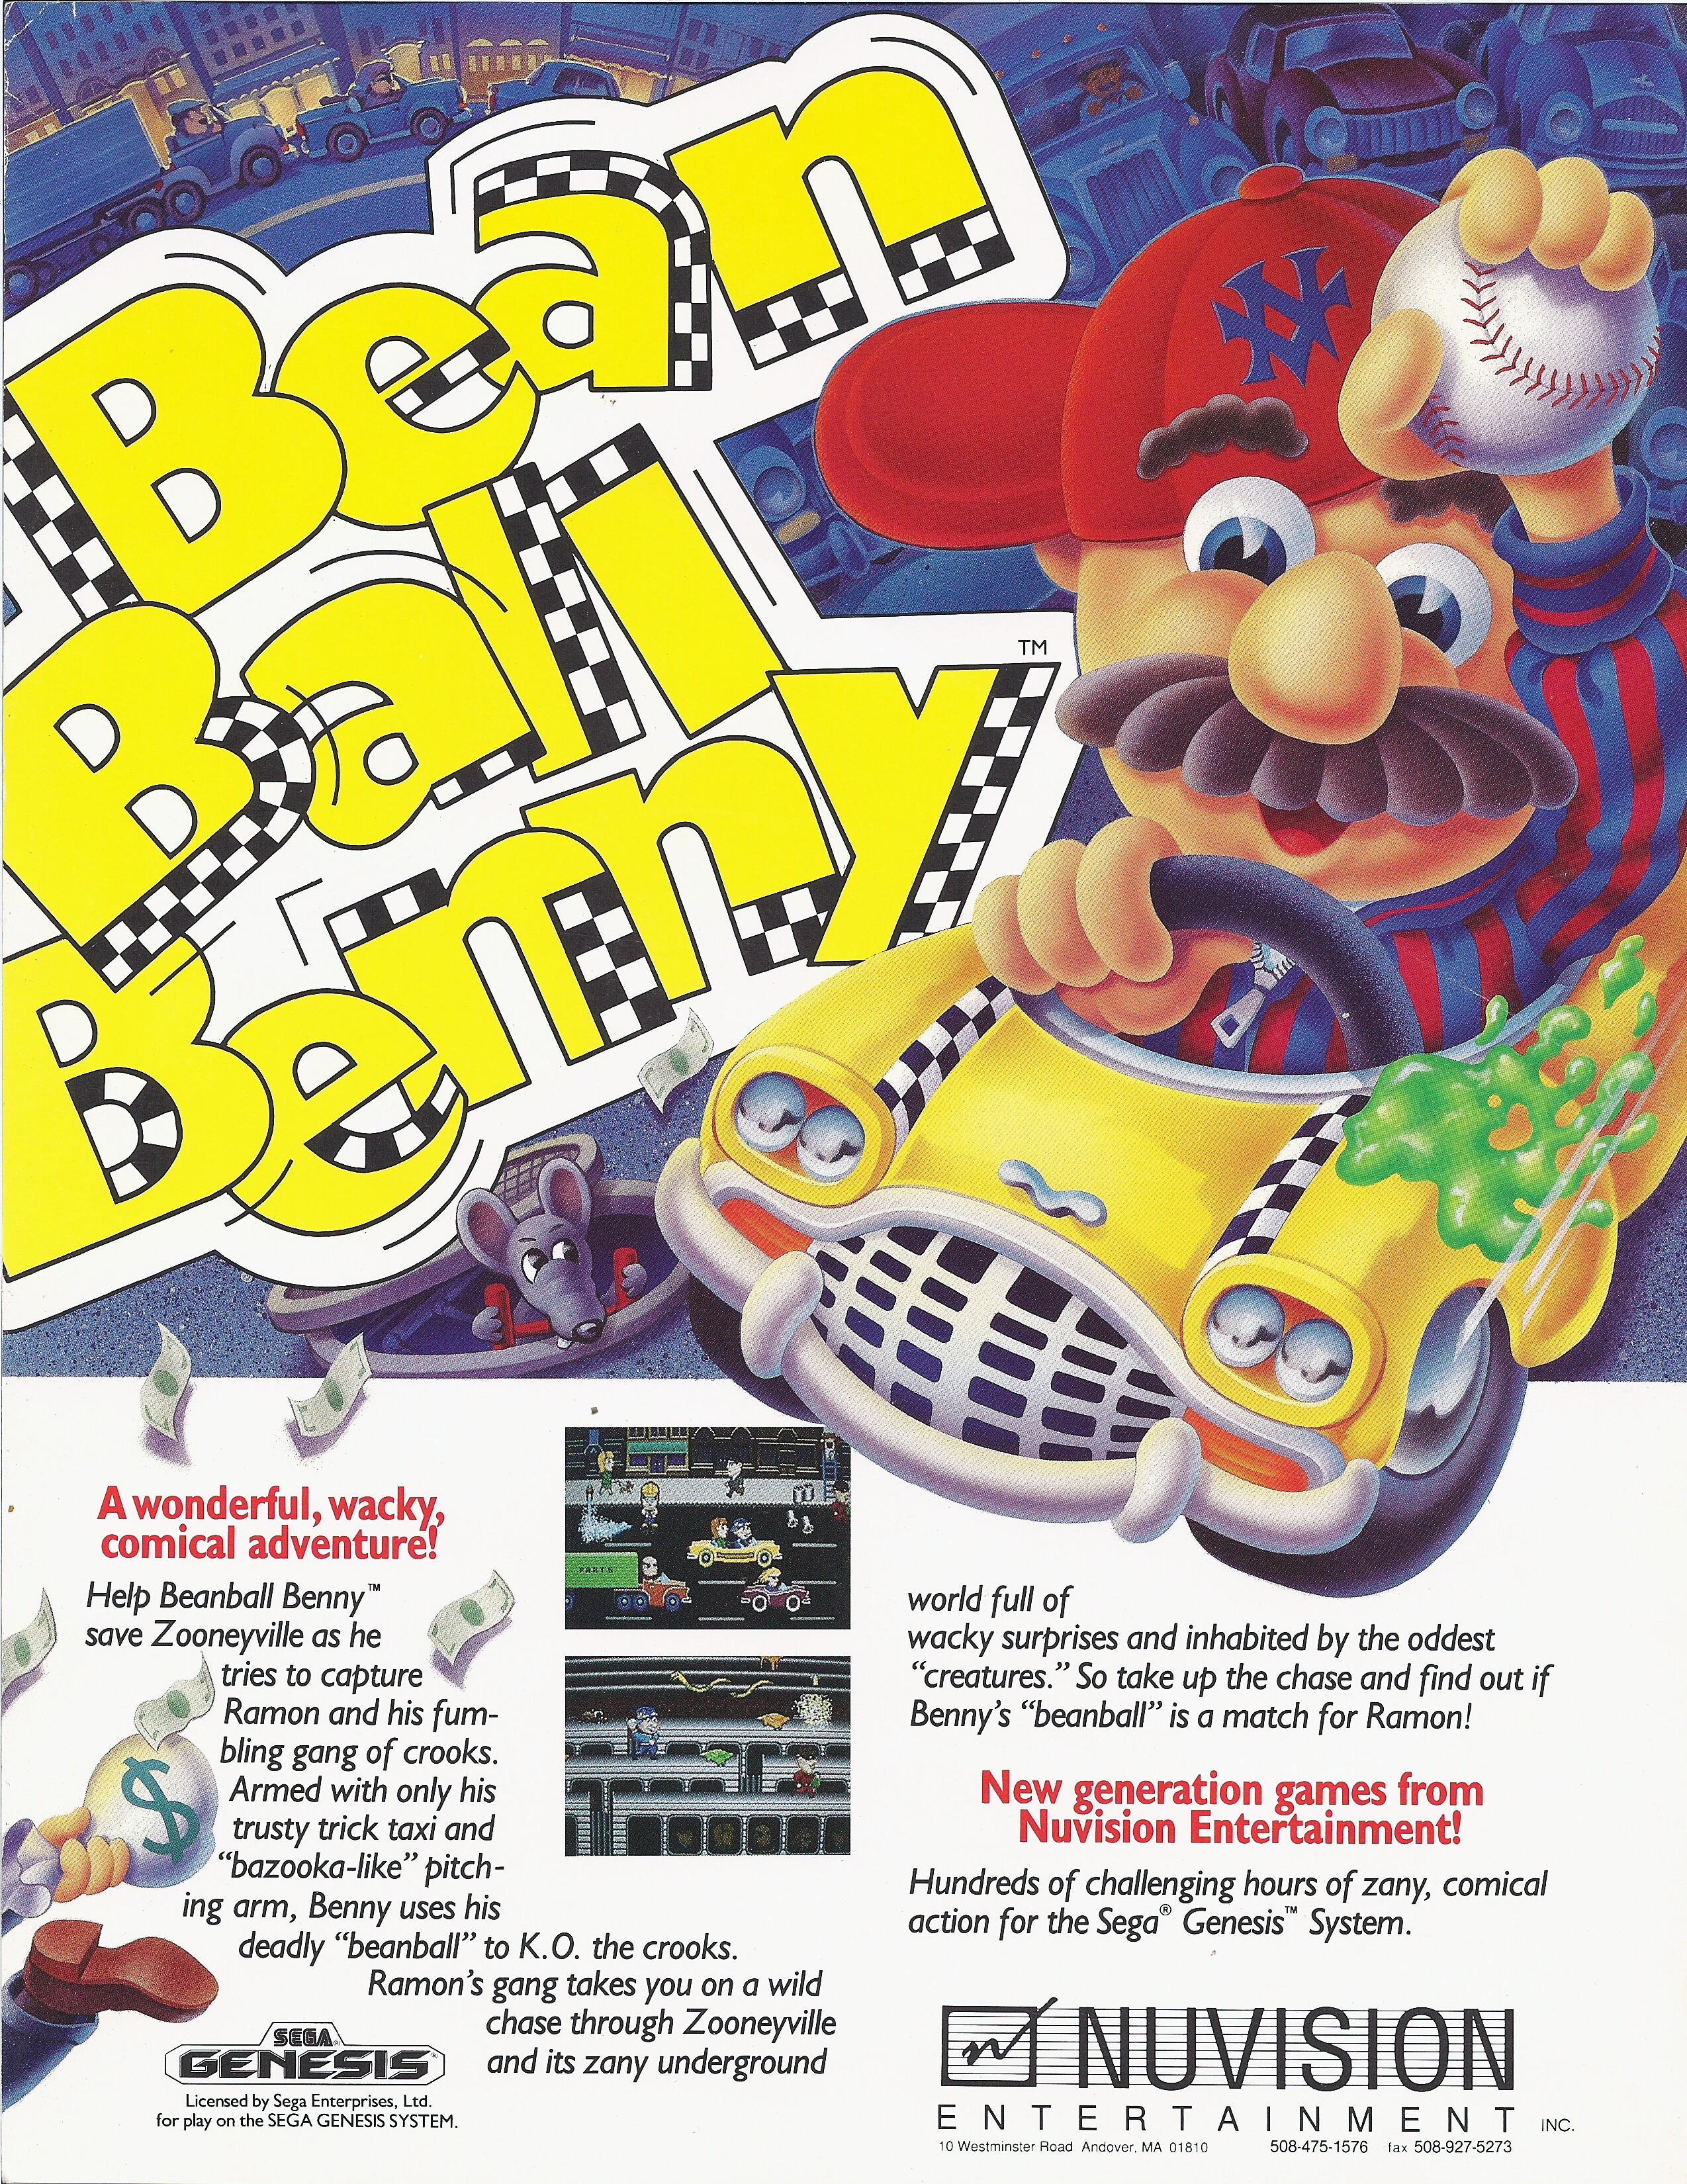 Bean Ball Benny (Cancelled 1991 Sega Genesis Video Game)